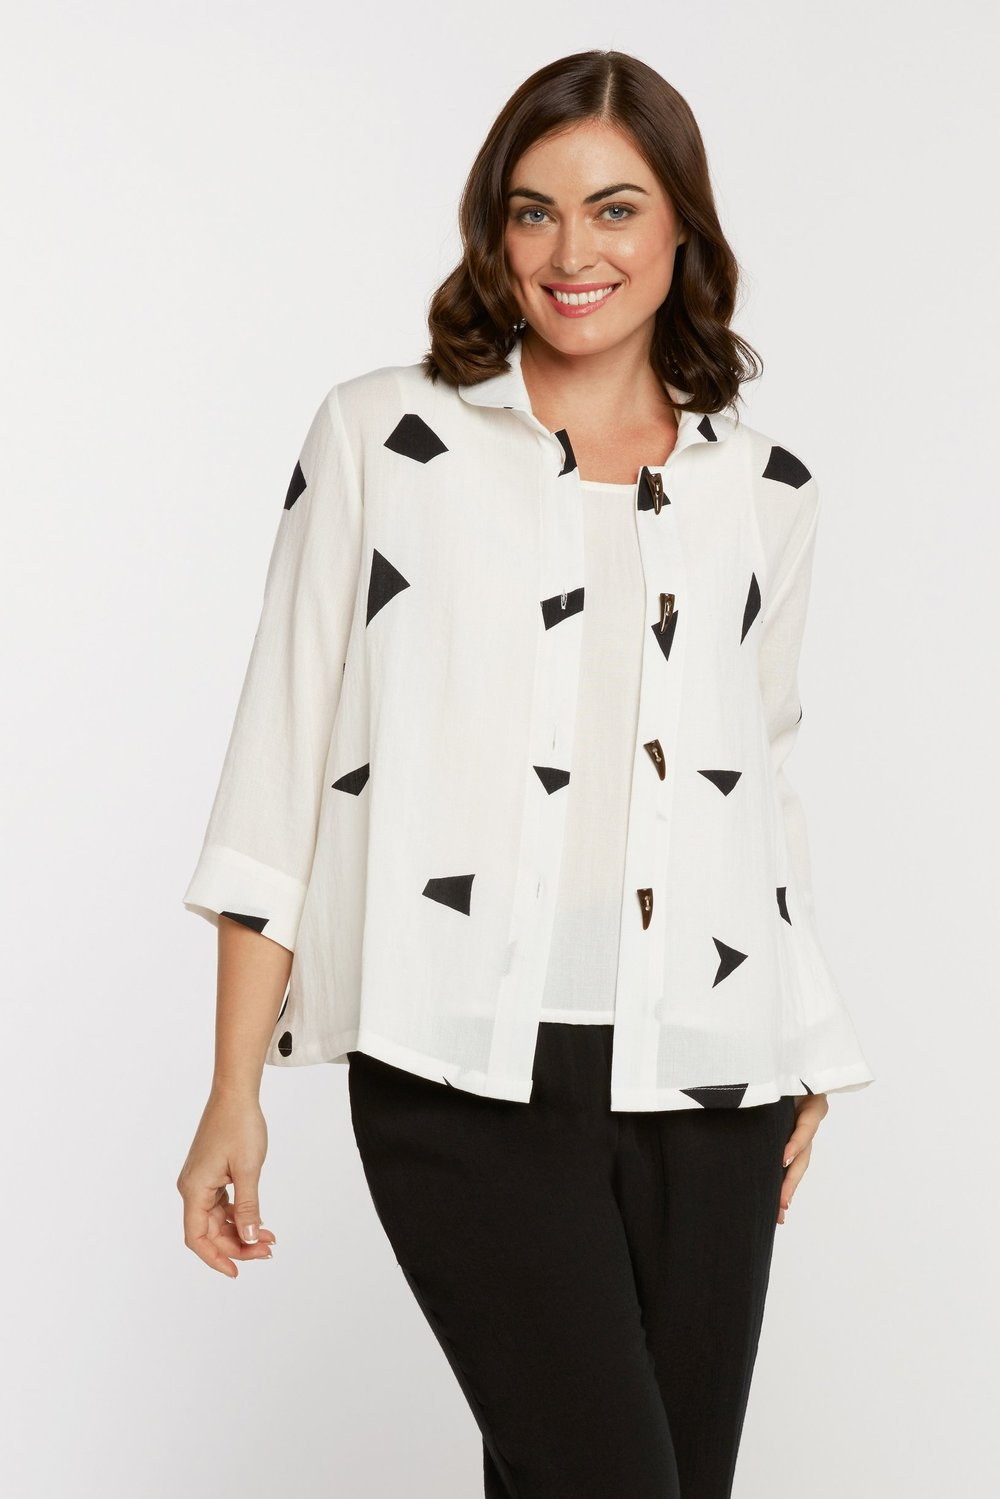 AA85 - Short Horn Button Jacket    CL9239 - Shapes on White